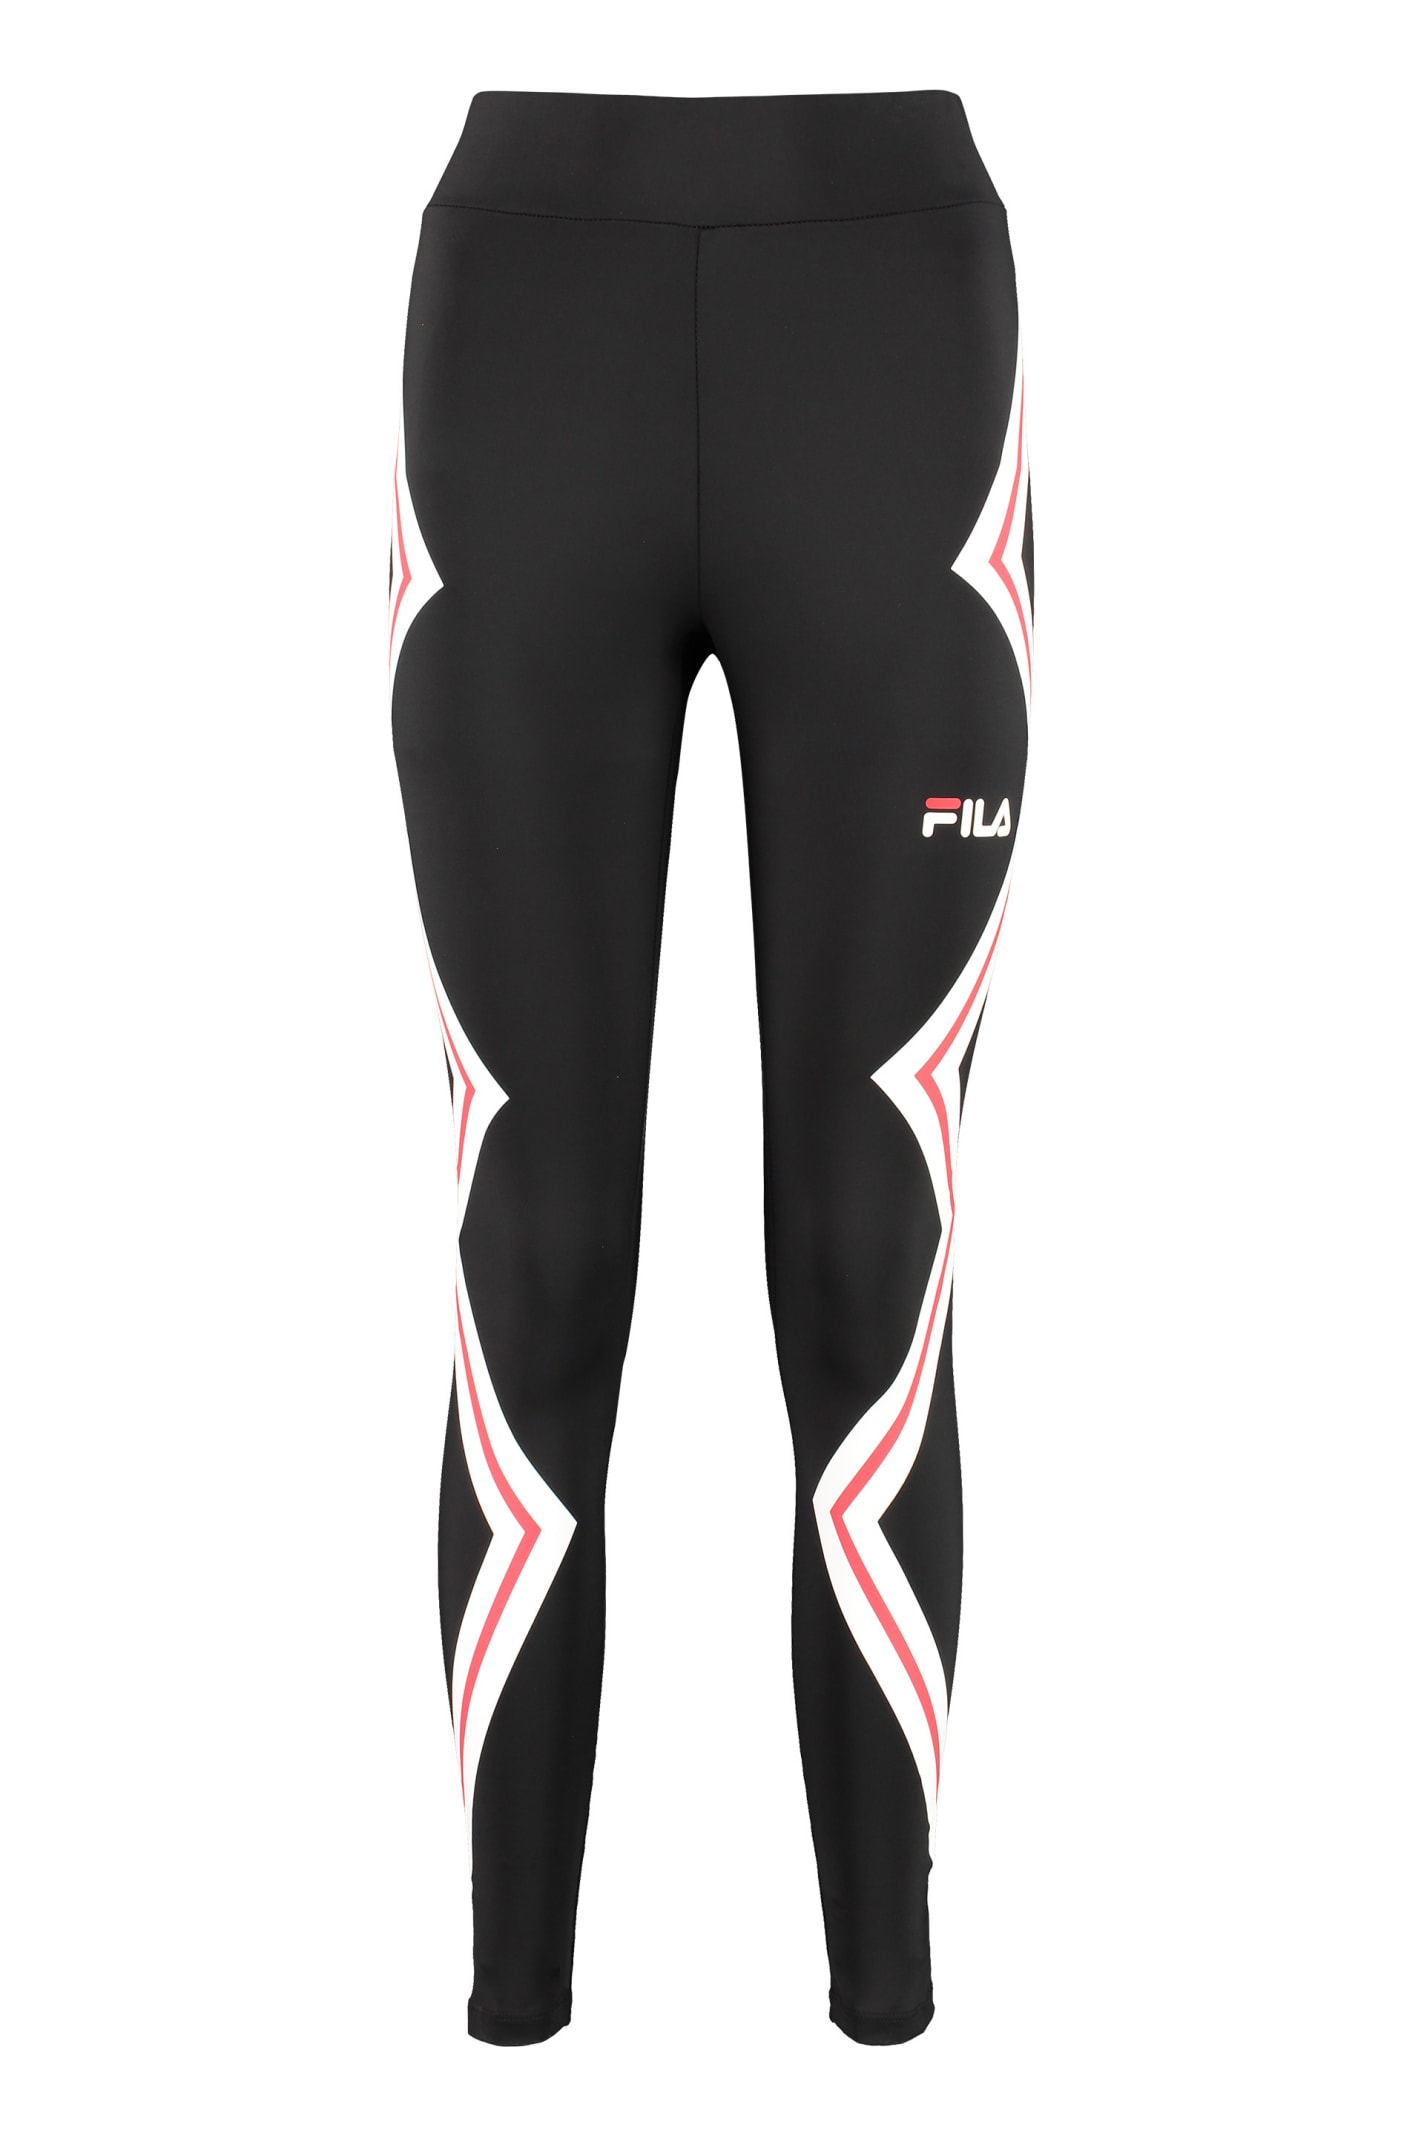 Fila Zuri Technical Fabric Leggings